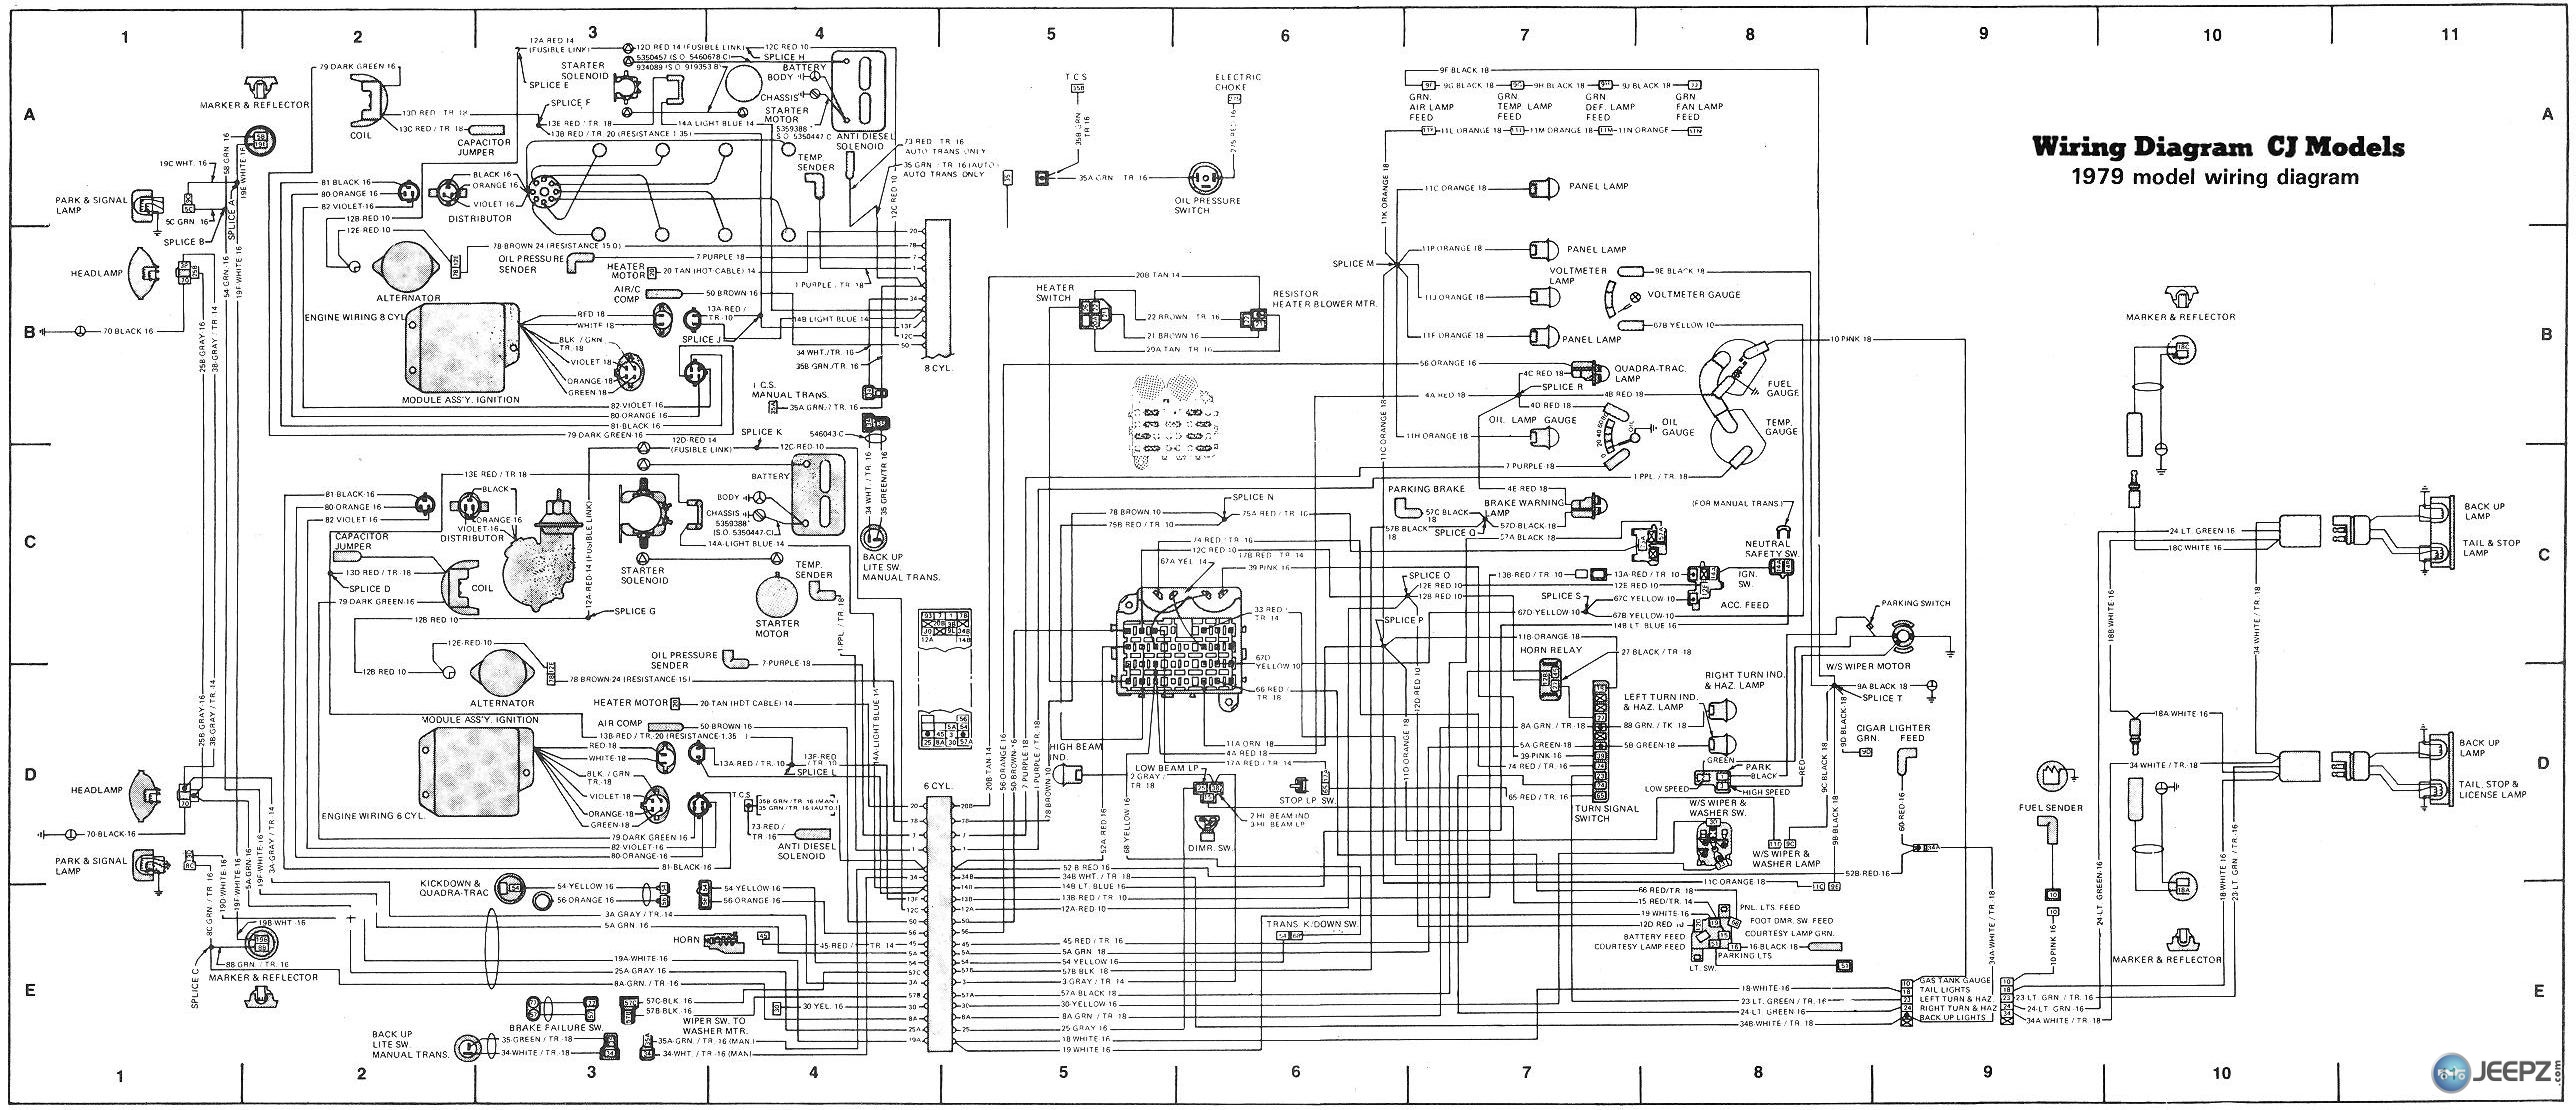 87 Jeep Wrangler Steering Column Diagram Wiring Schematic Ford Super Duty Ignition Module Diagrams Scematic Rh 29 Jessicadonath De Flex